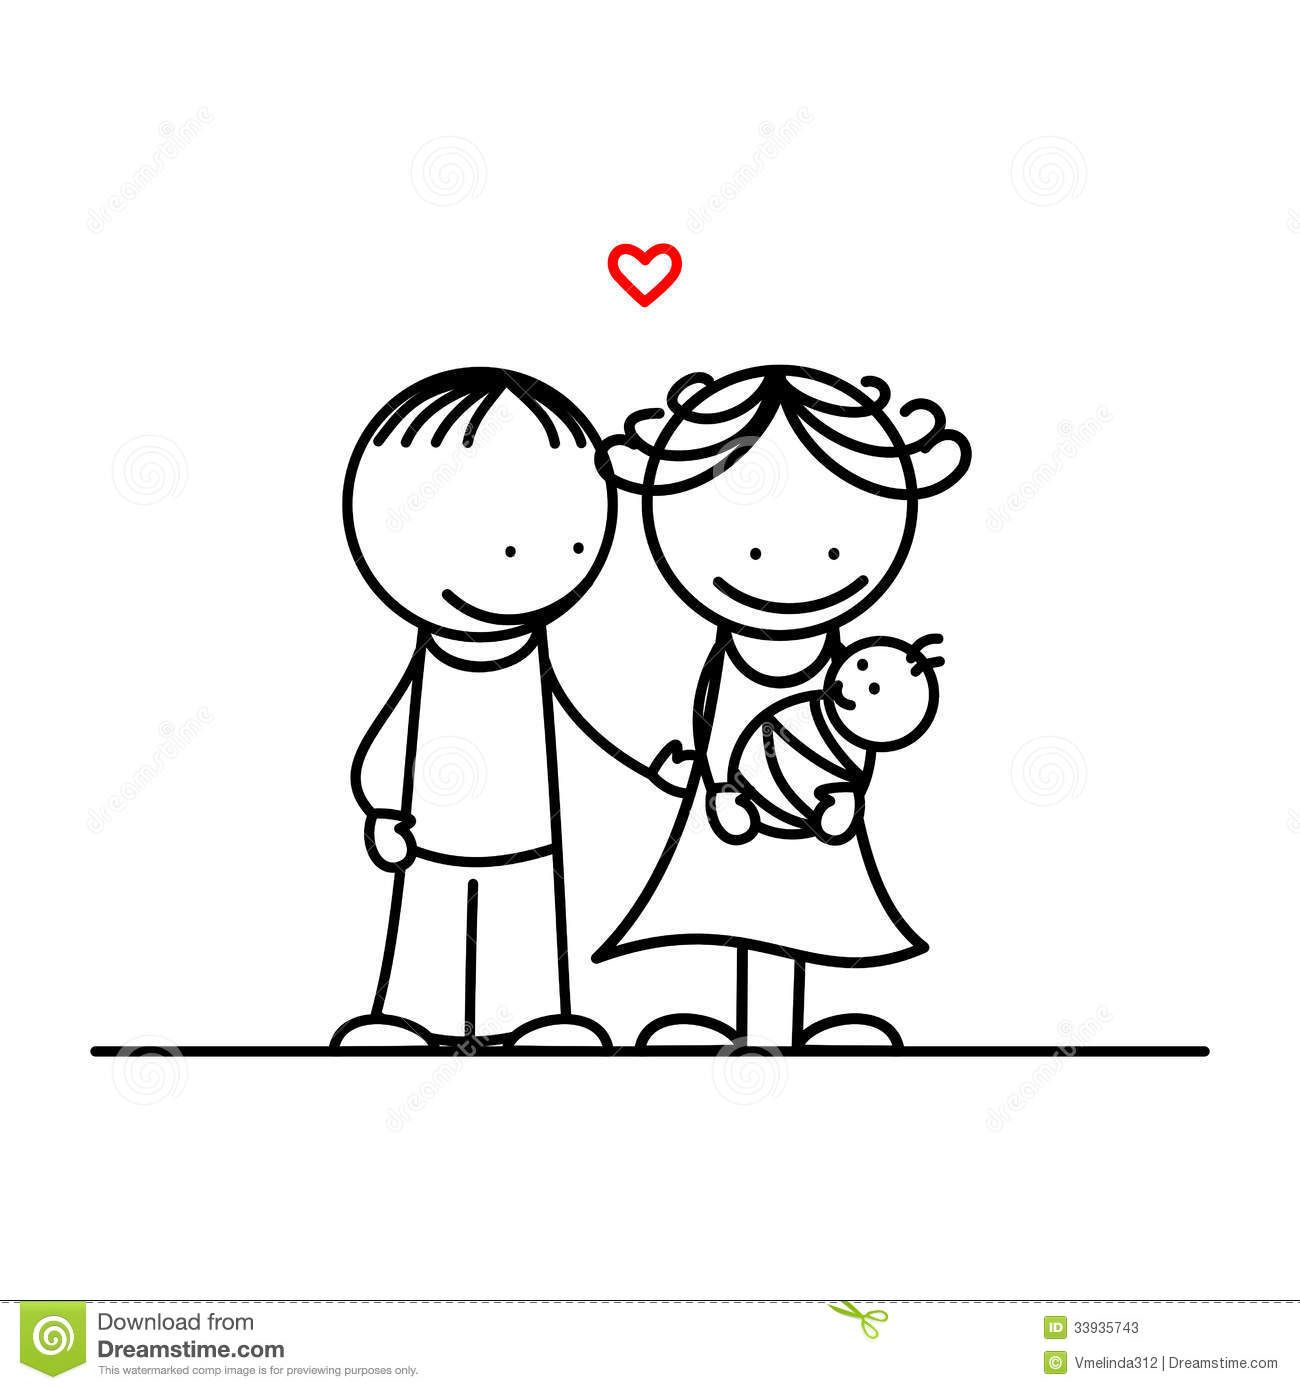 mom dad and baby silhouette - Google Search | Arts/Crafts ...